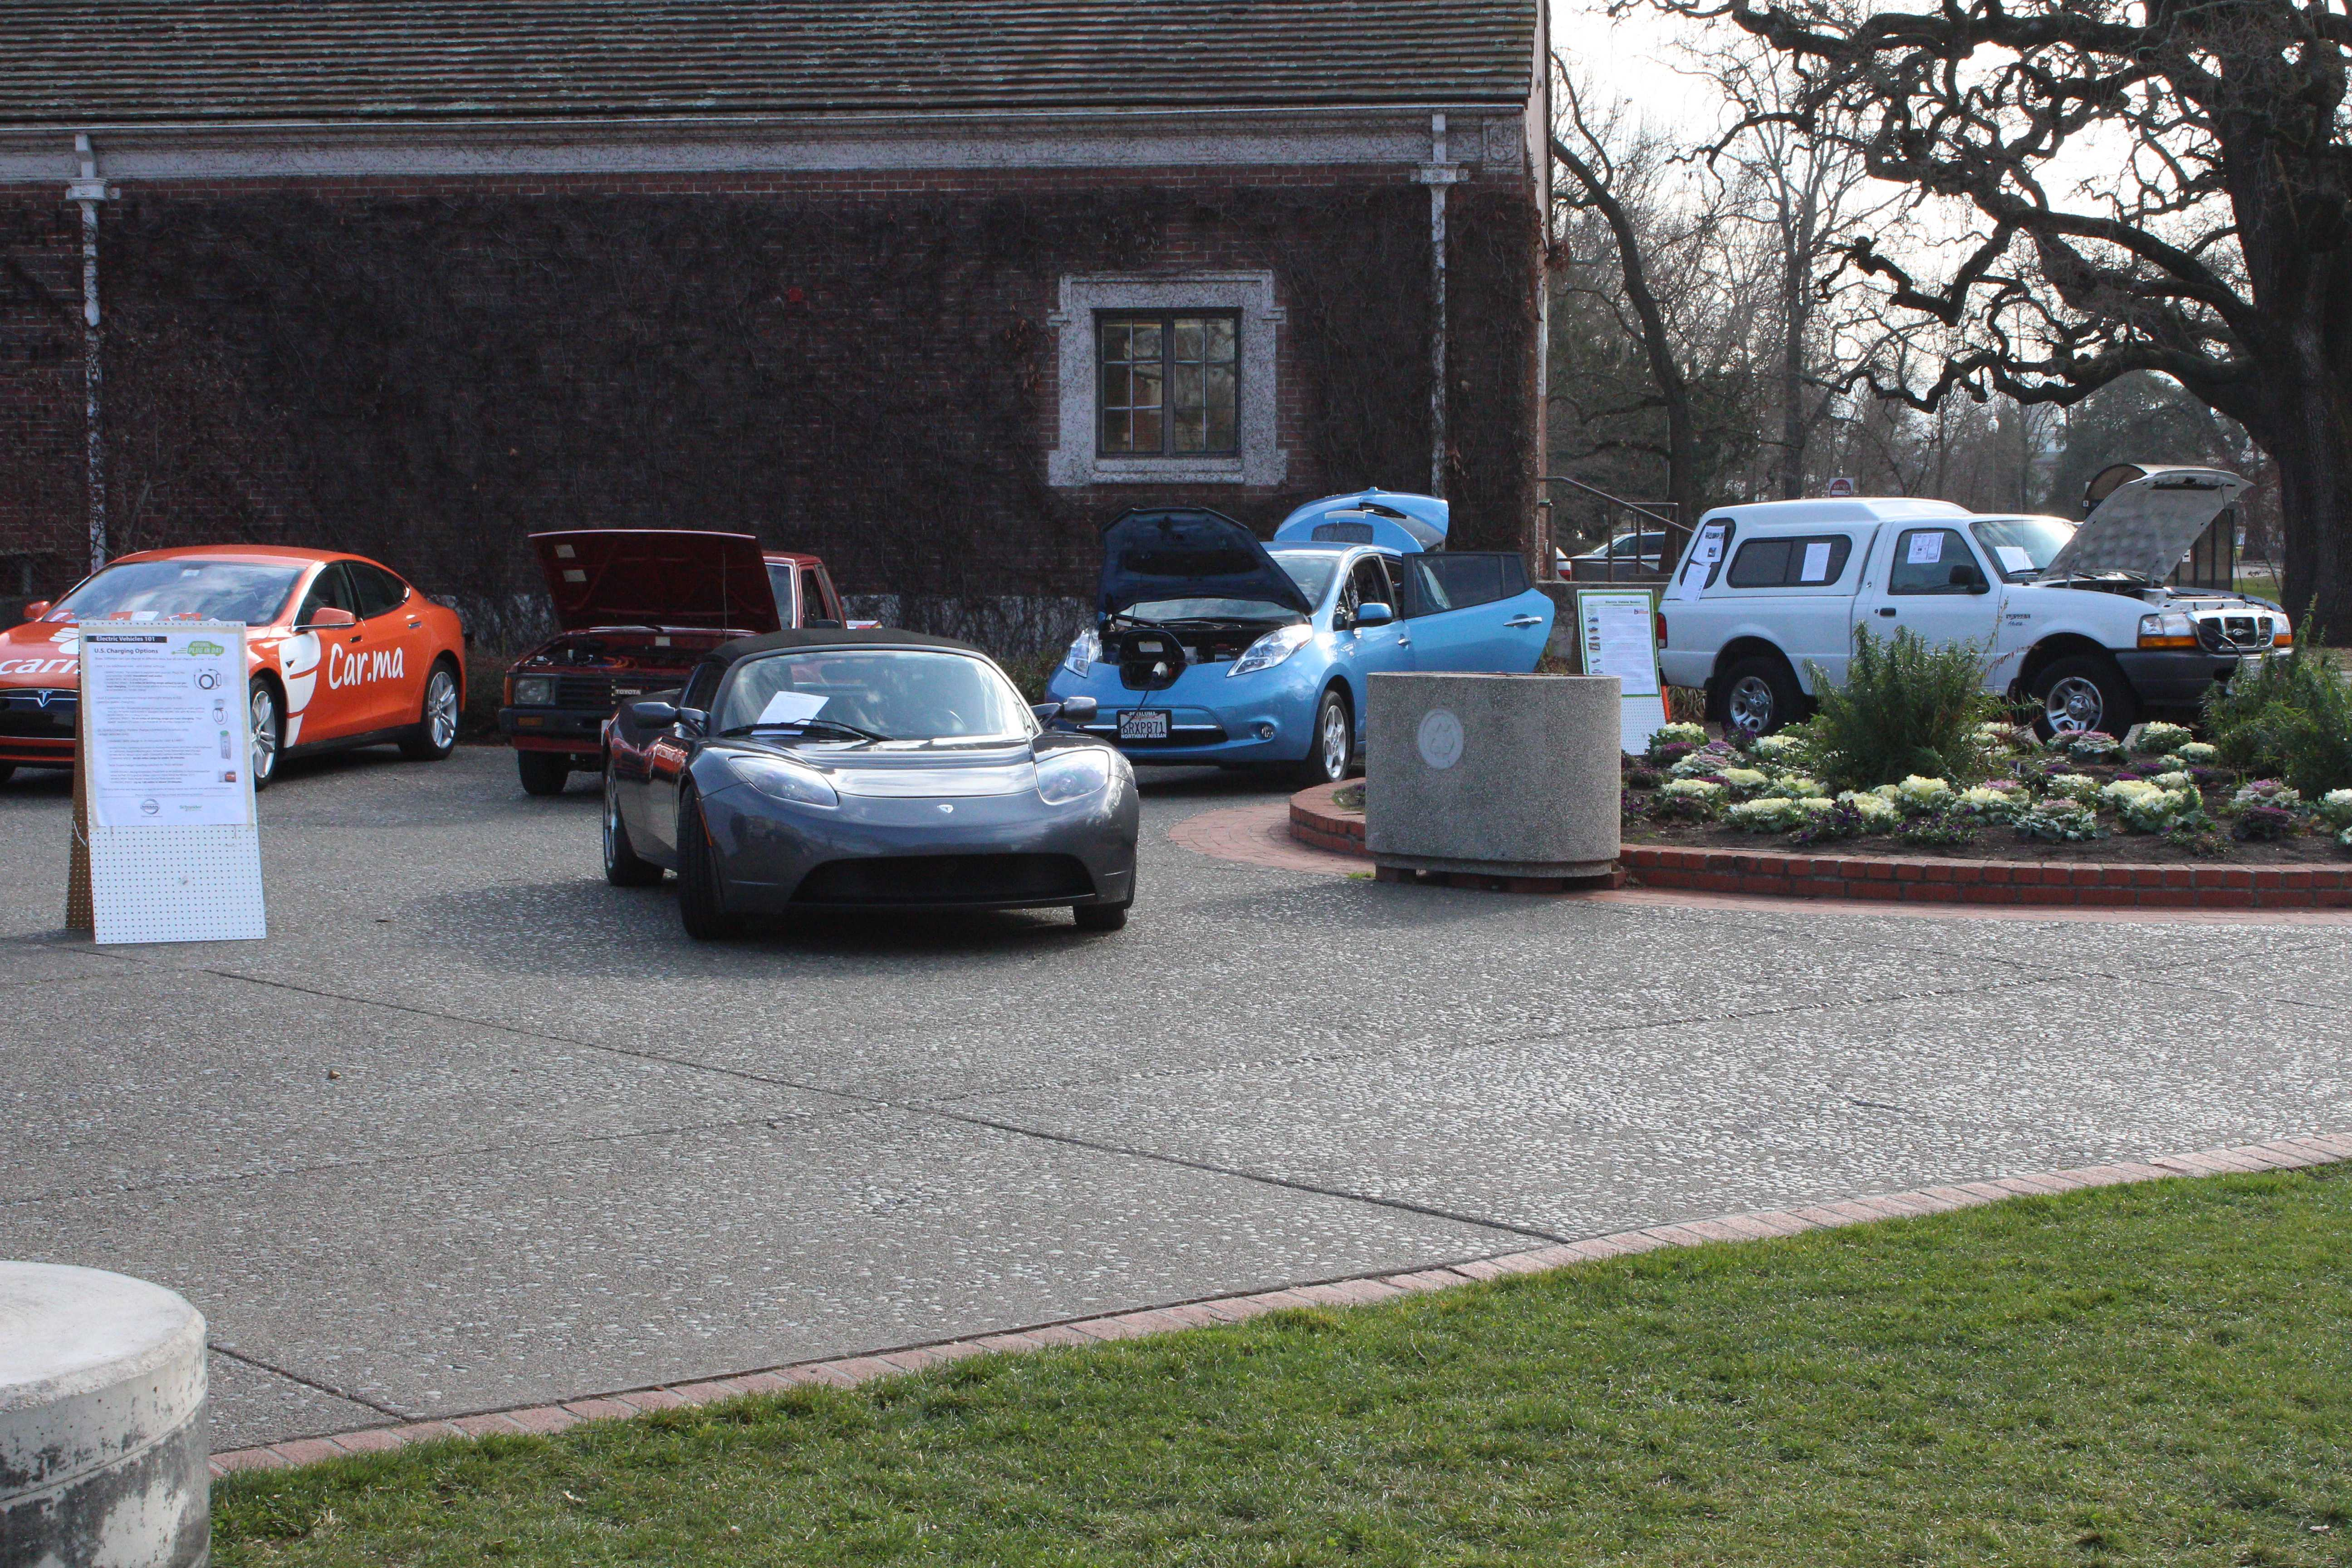 An electric car show (above) gives attendees a real life application of how renewable strategies are underway in the car industry.